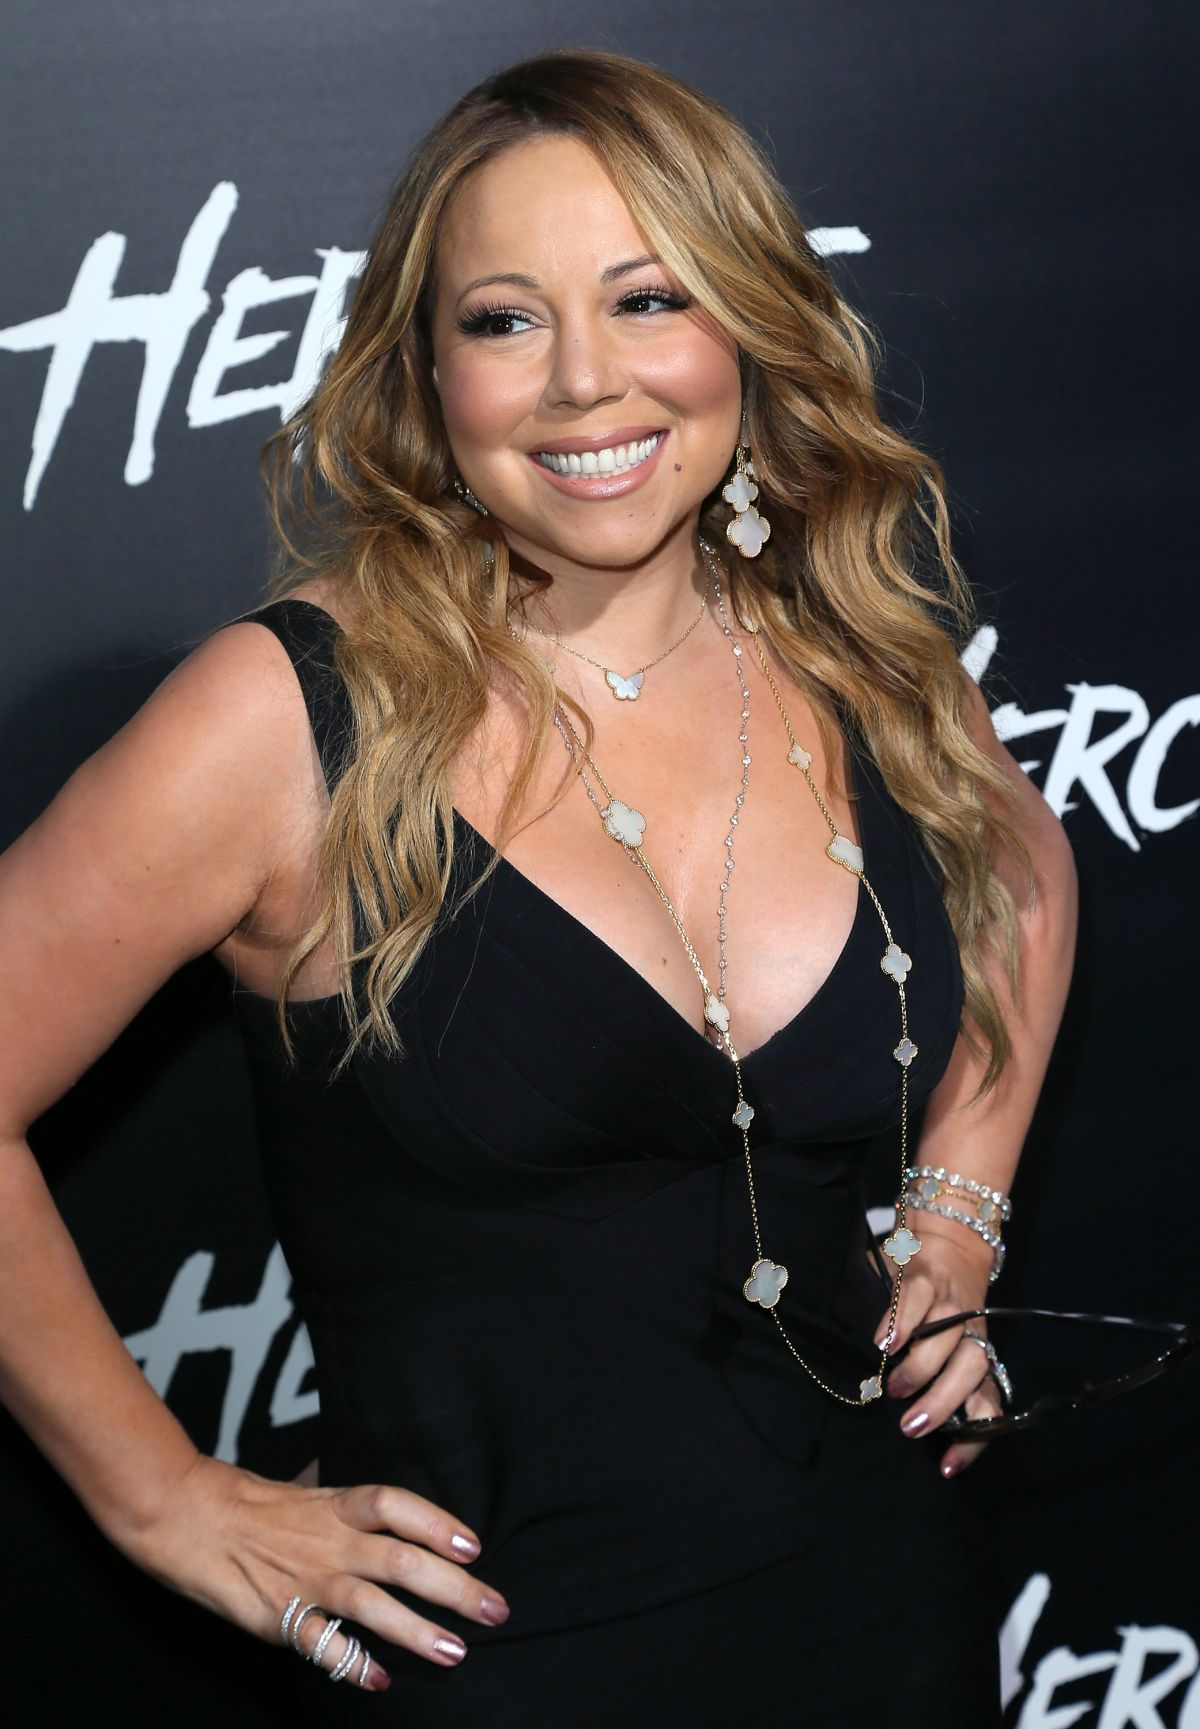 MARIAH CAREY at Hercules Premiere in Los Angeles